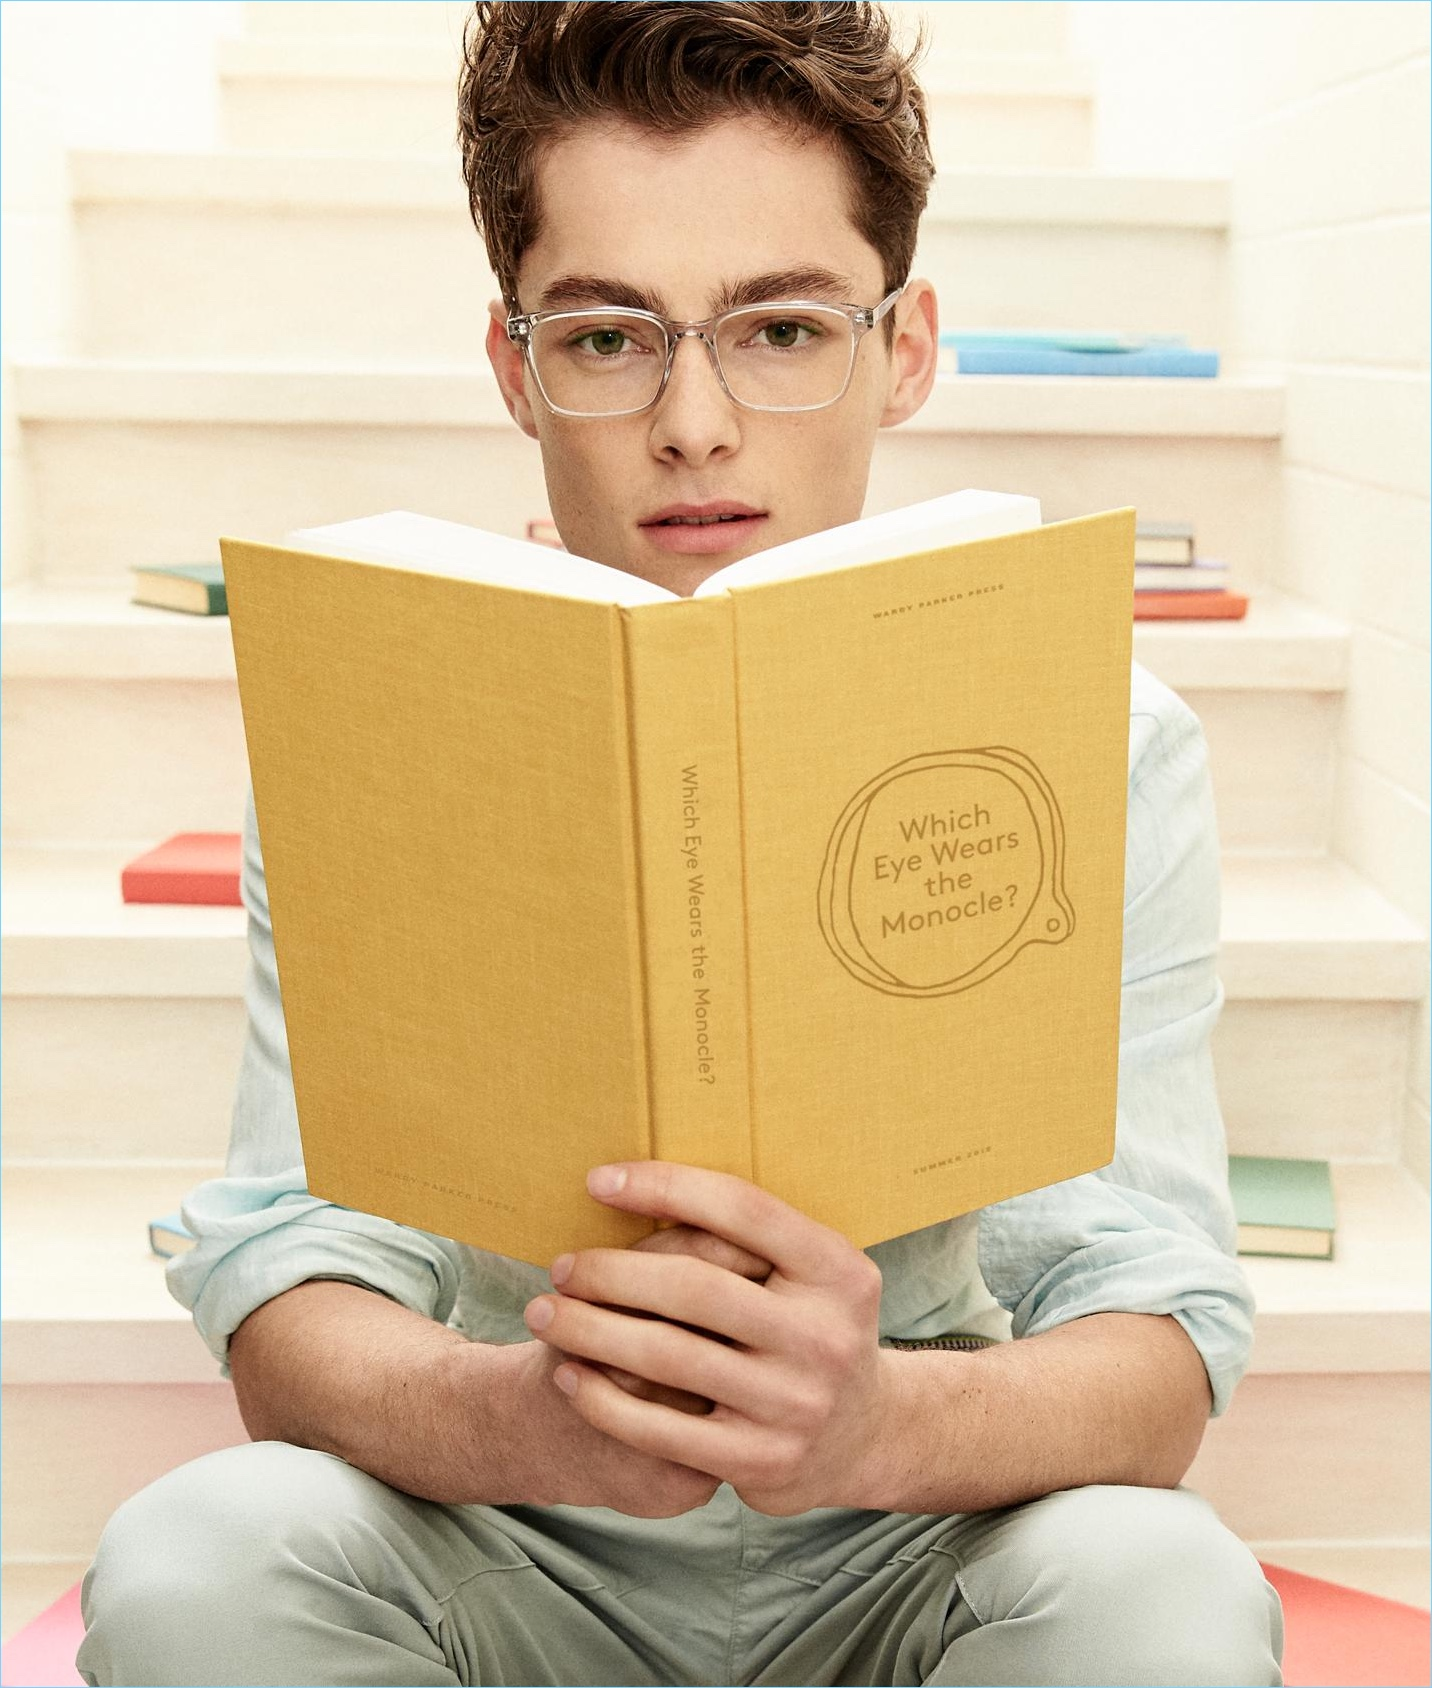 e0f5b13d0a Prepare for Summer Reading with Warby Parker s Newest Glasses